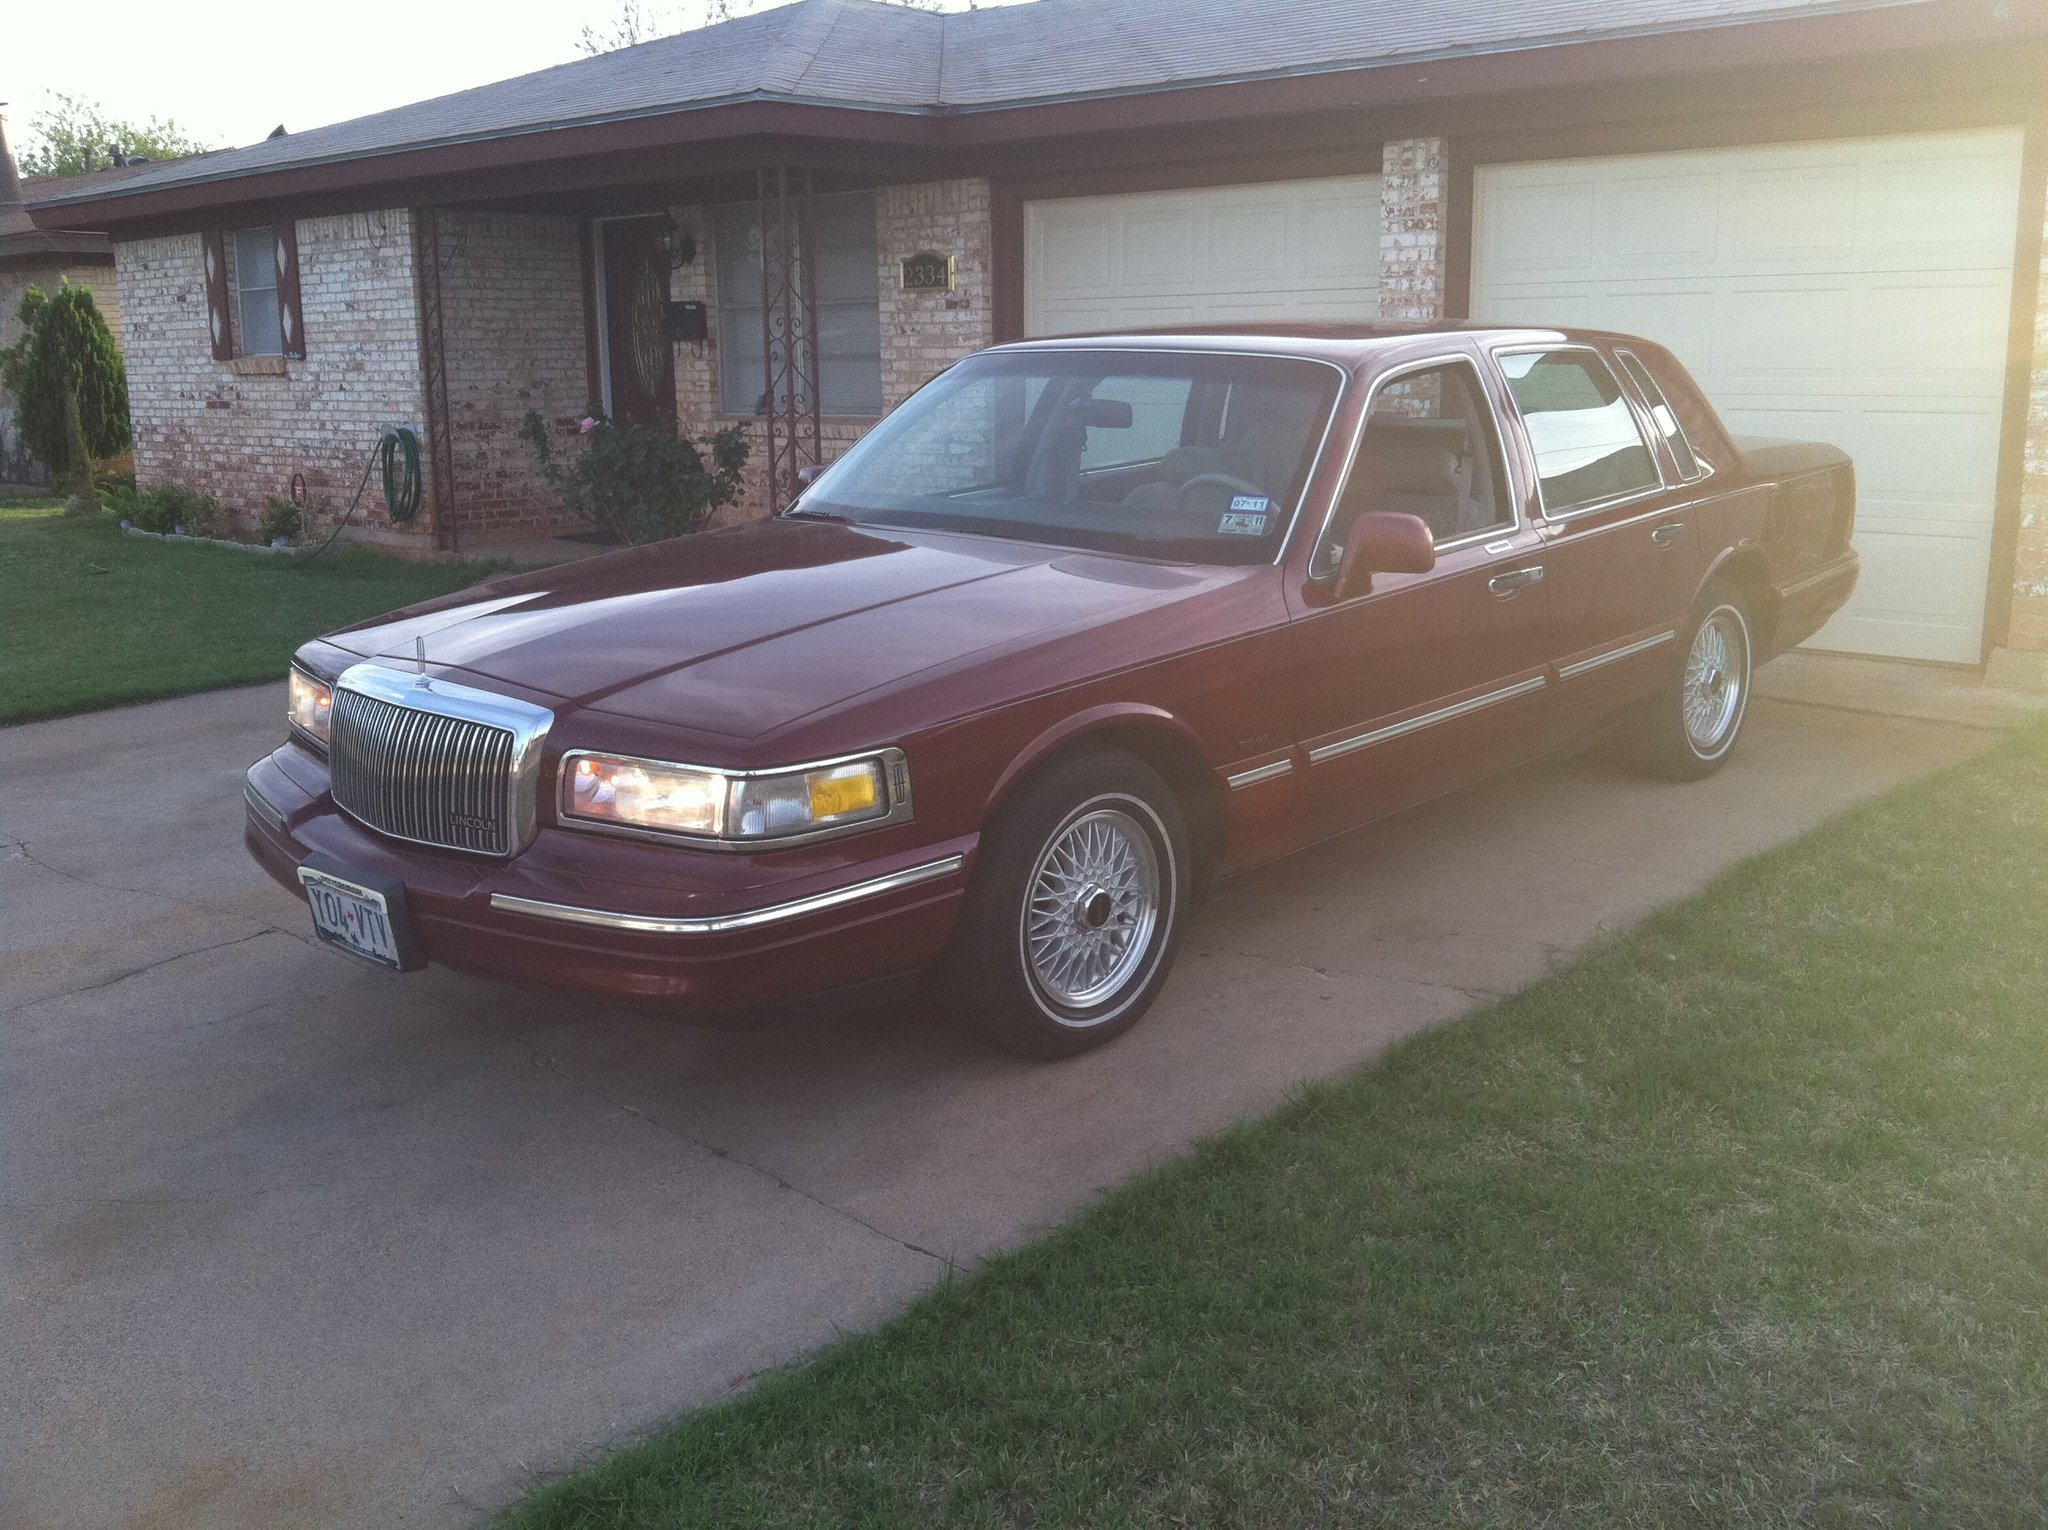 Ralphdoggs Profile In Lowrider Land Ca Lincoln Town Car Another Ralphdogg 1996 Post 15085715